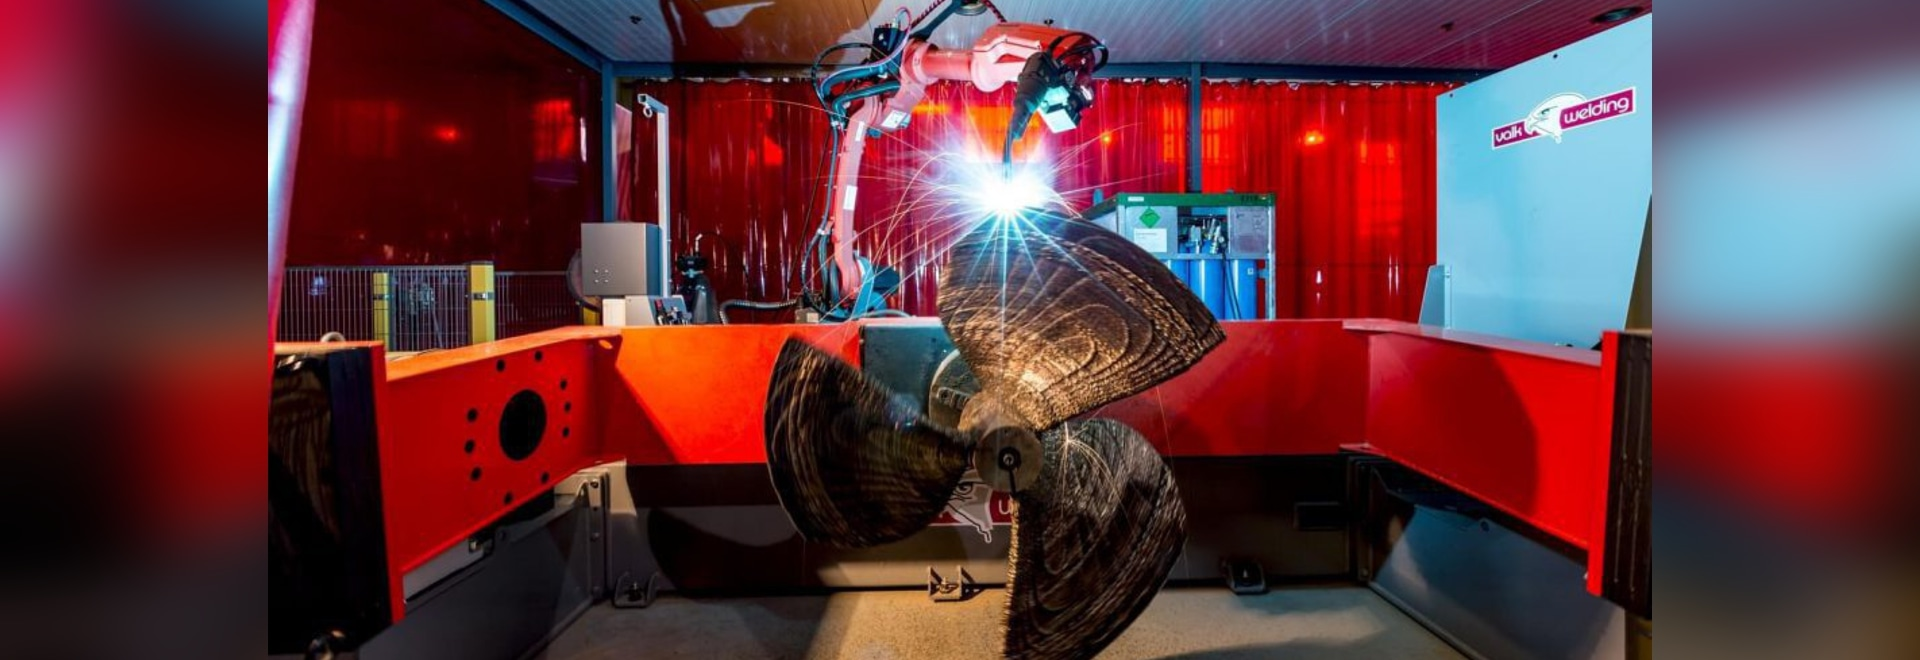 SMM to Host Live Demonstrations of 3D Printing